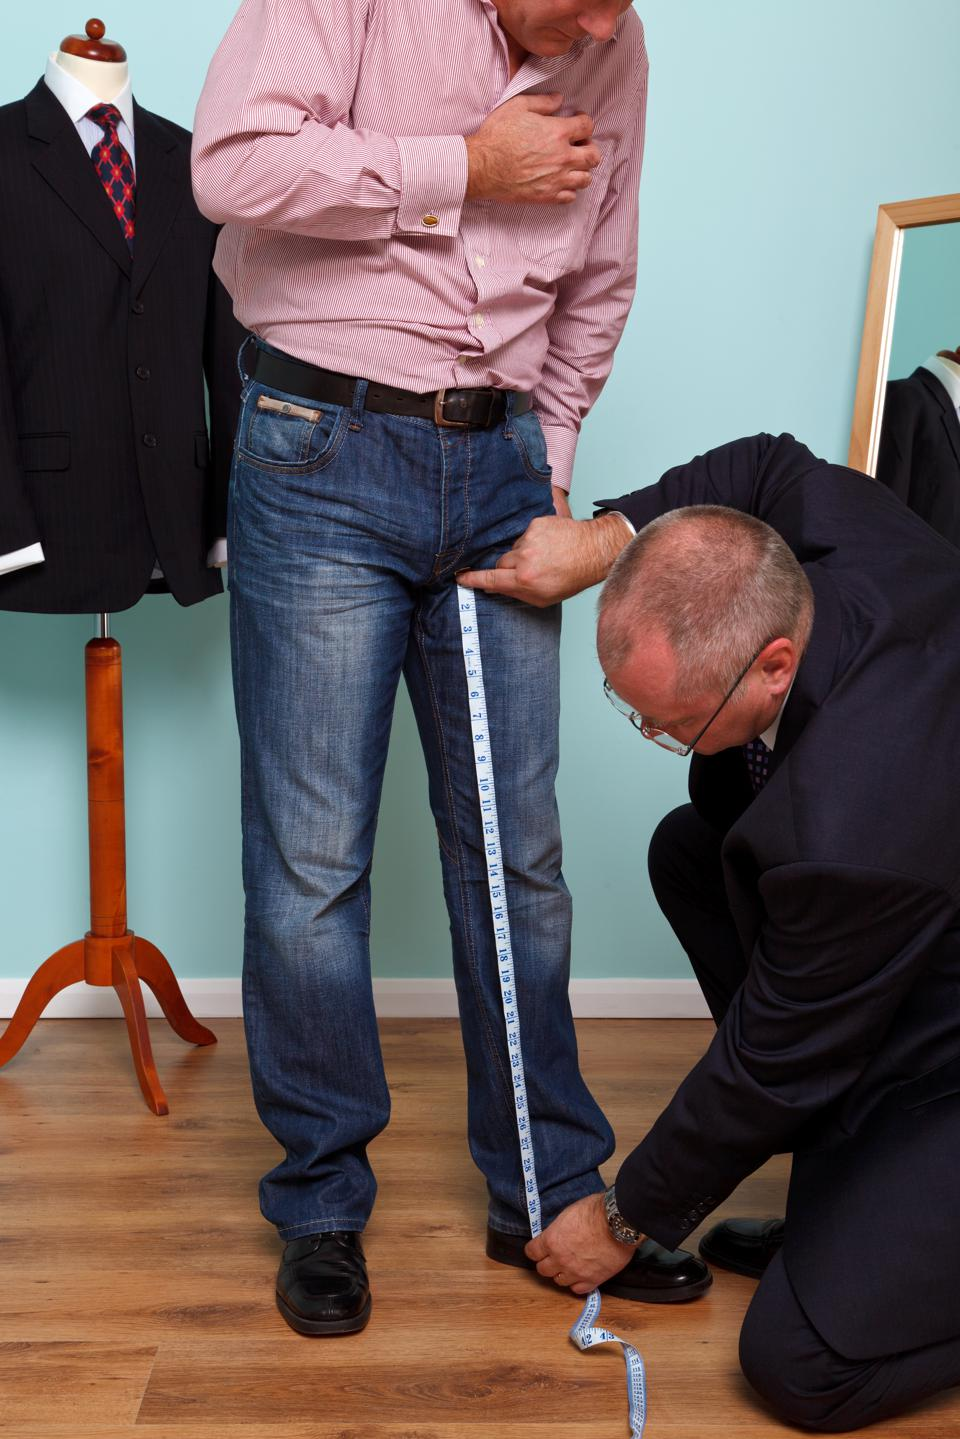 Inside leg being measured by a tailor during suit fitting